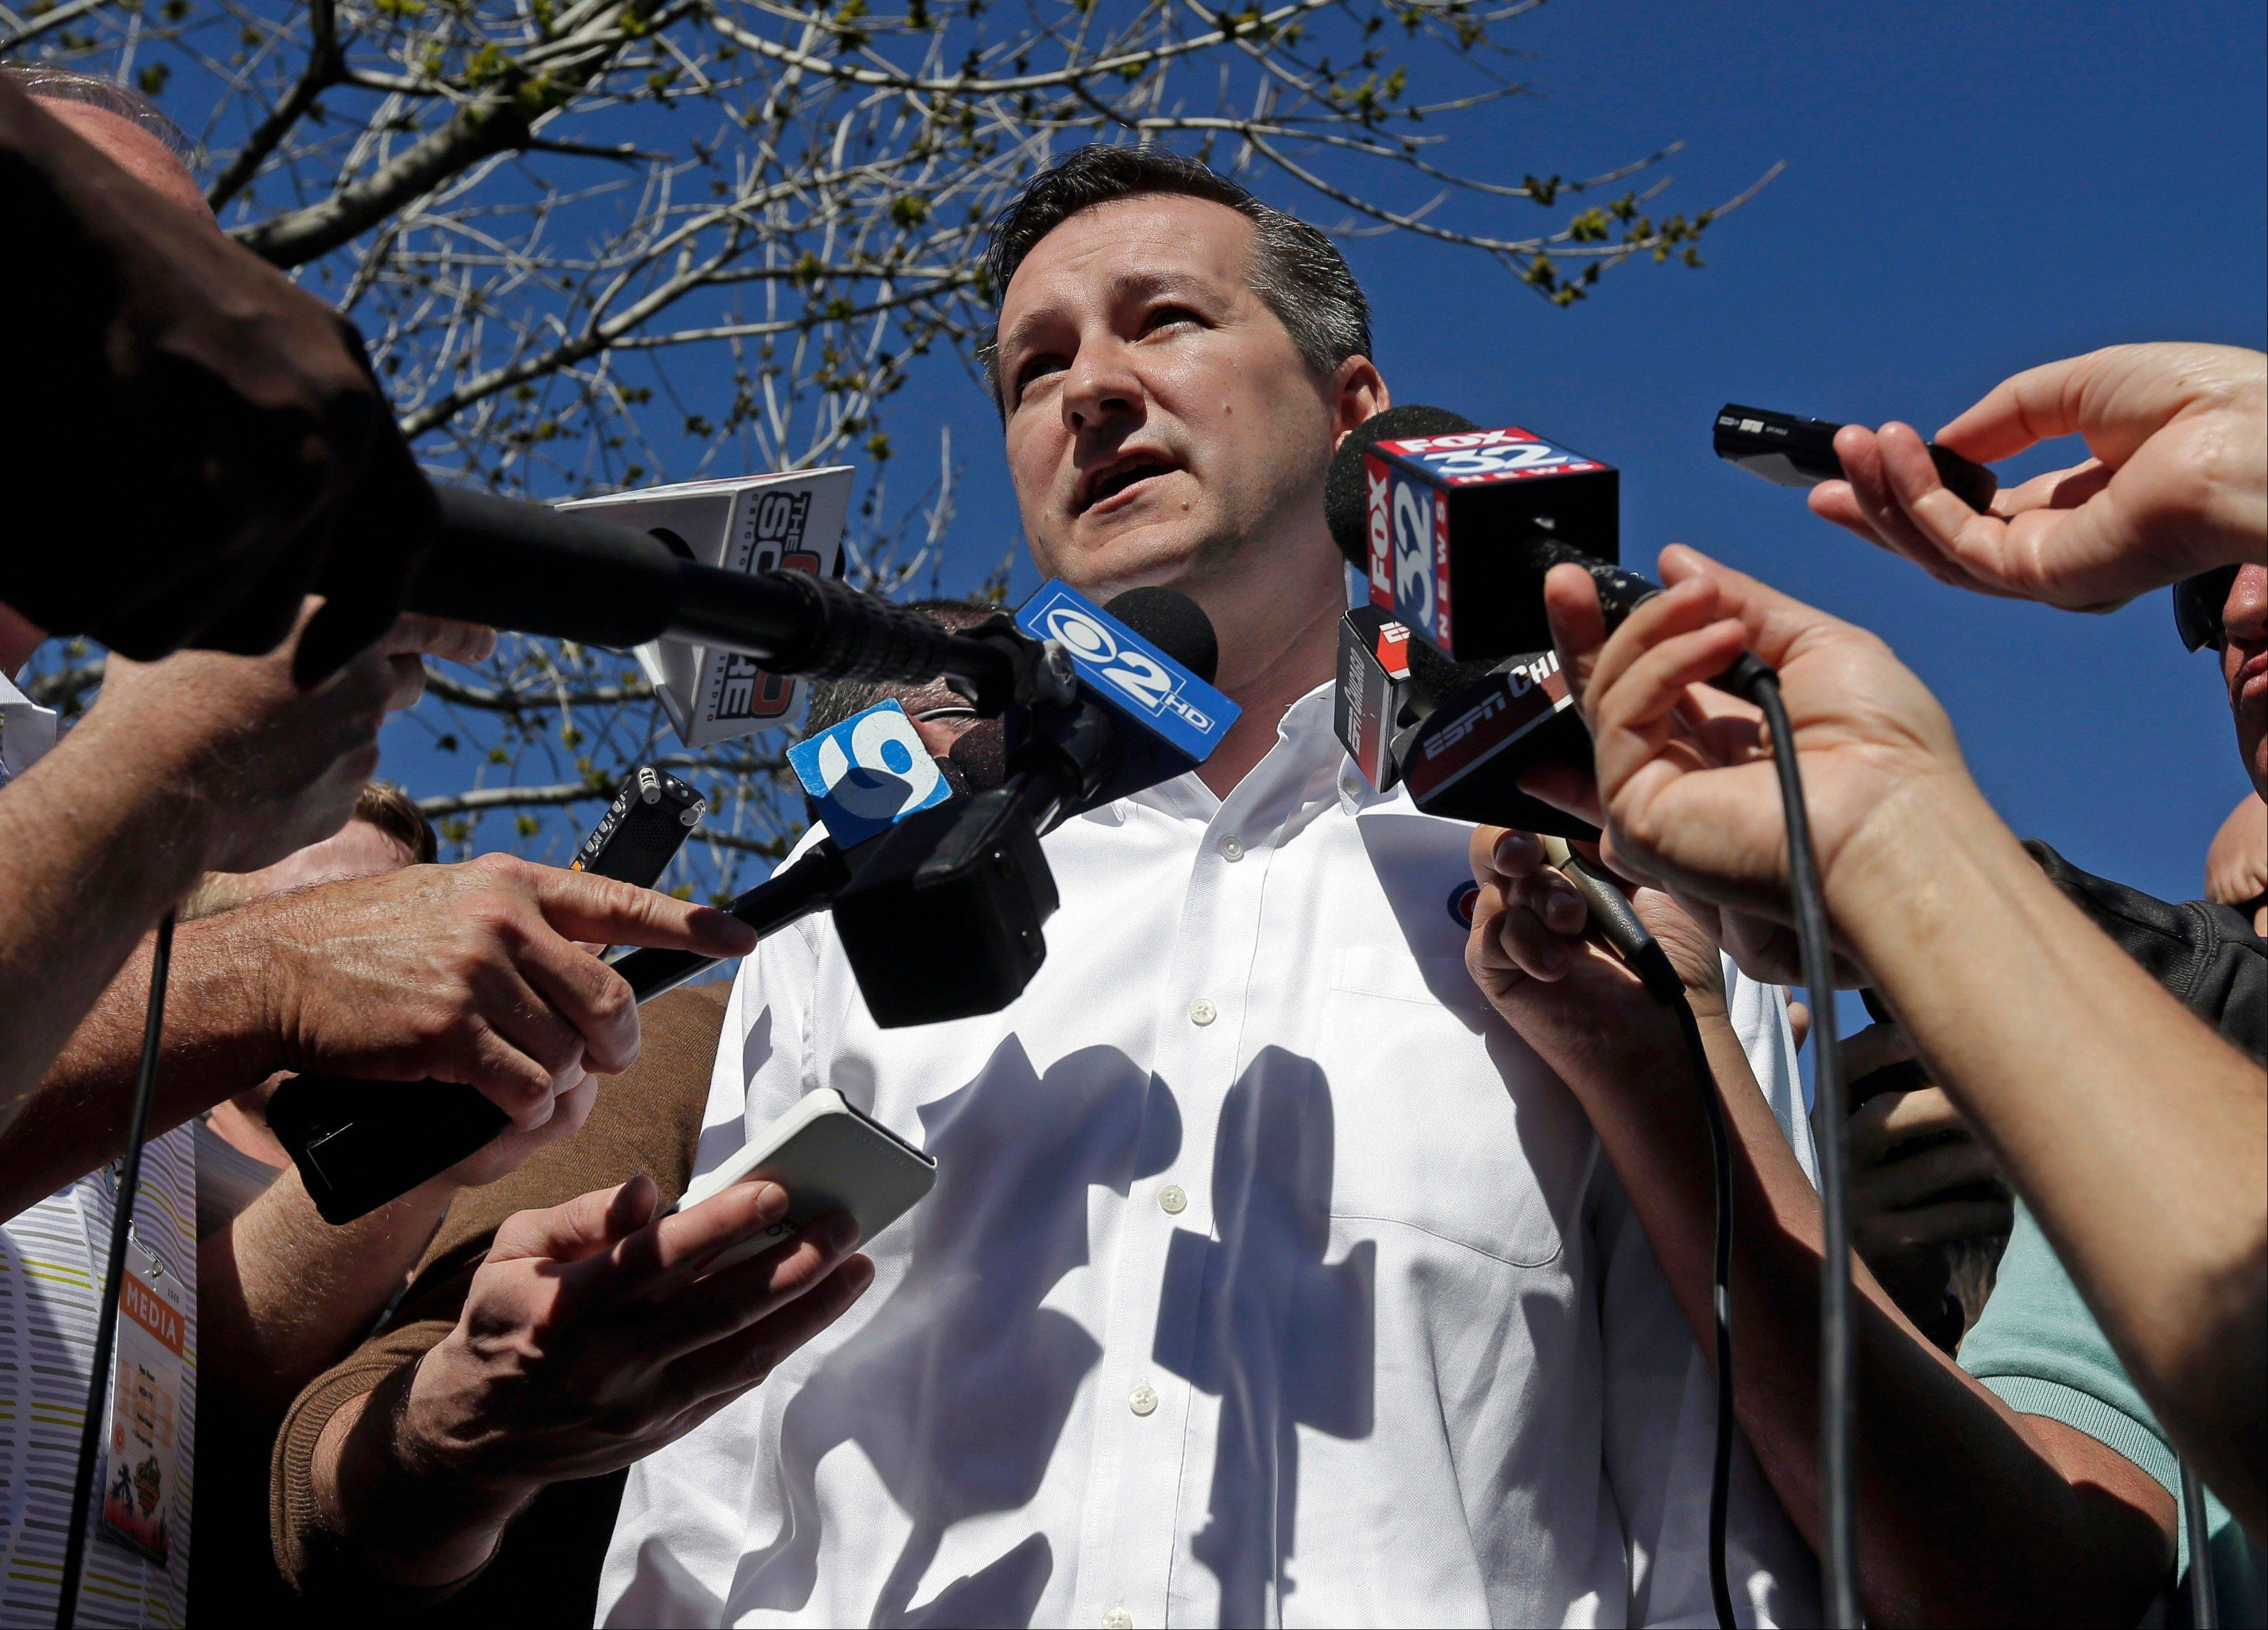 It's not so easy to predict just what will happen next for Cubs chairman Tom Ricketts and the future of Wrigley Field.